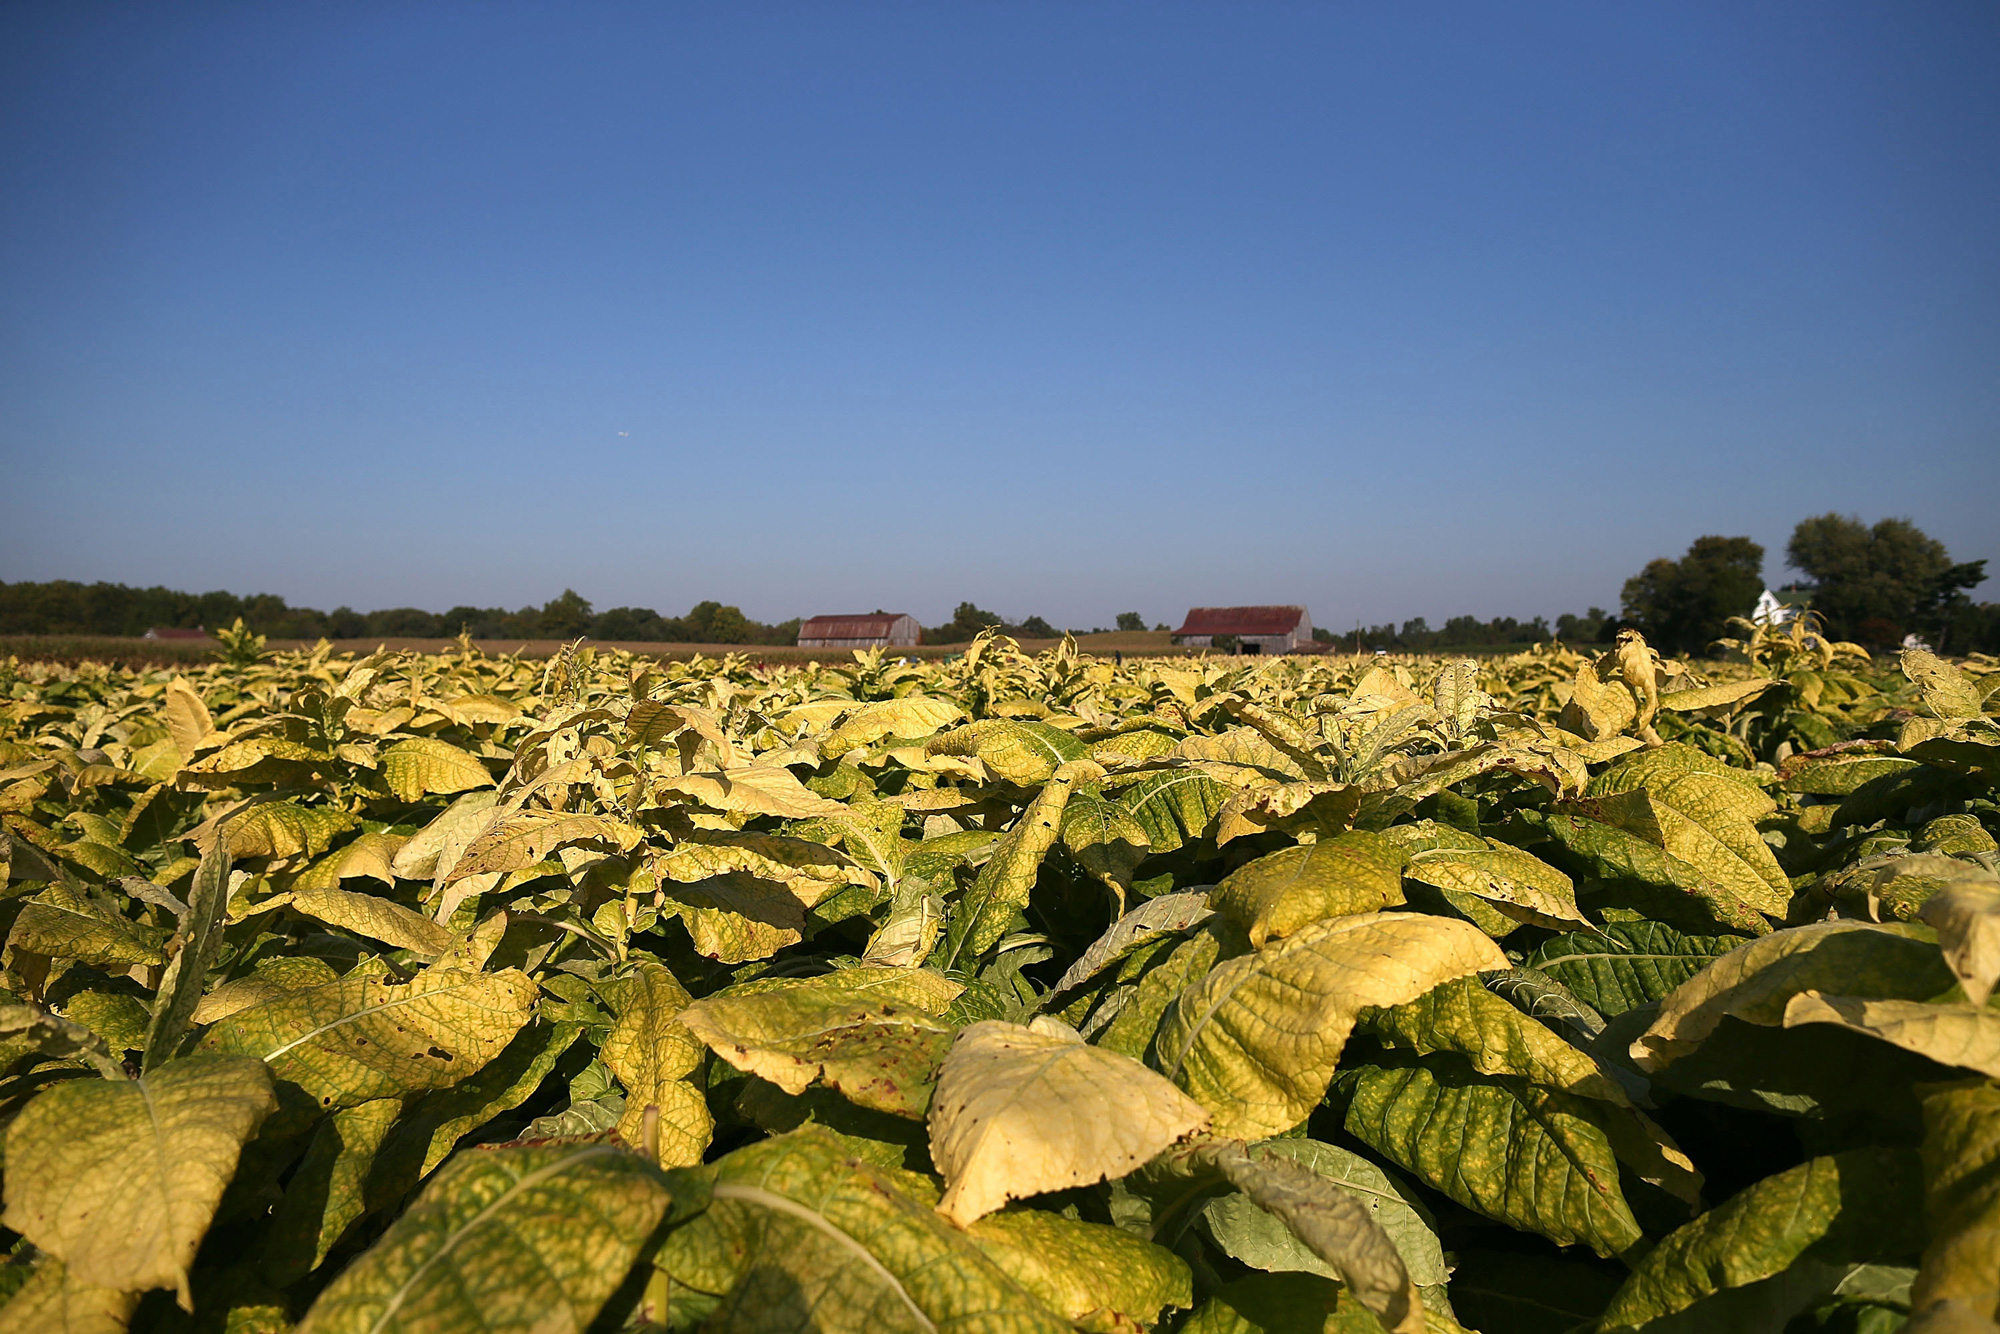 Researchers used genetic engineering to increase the yield of tobacco plants.